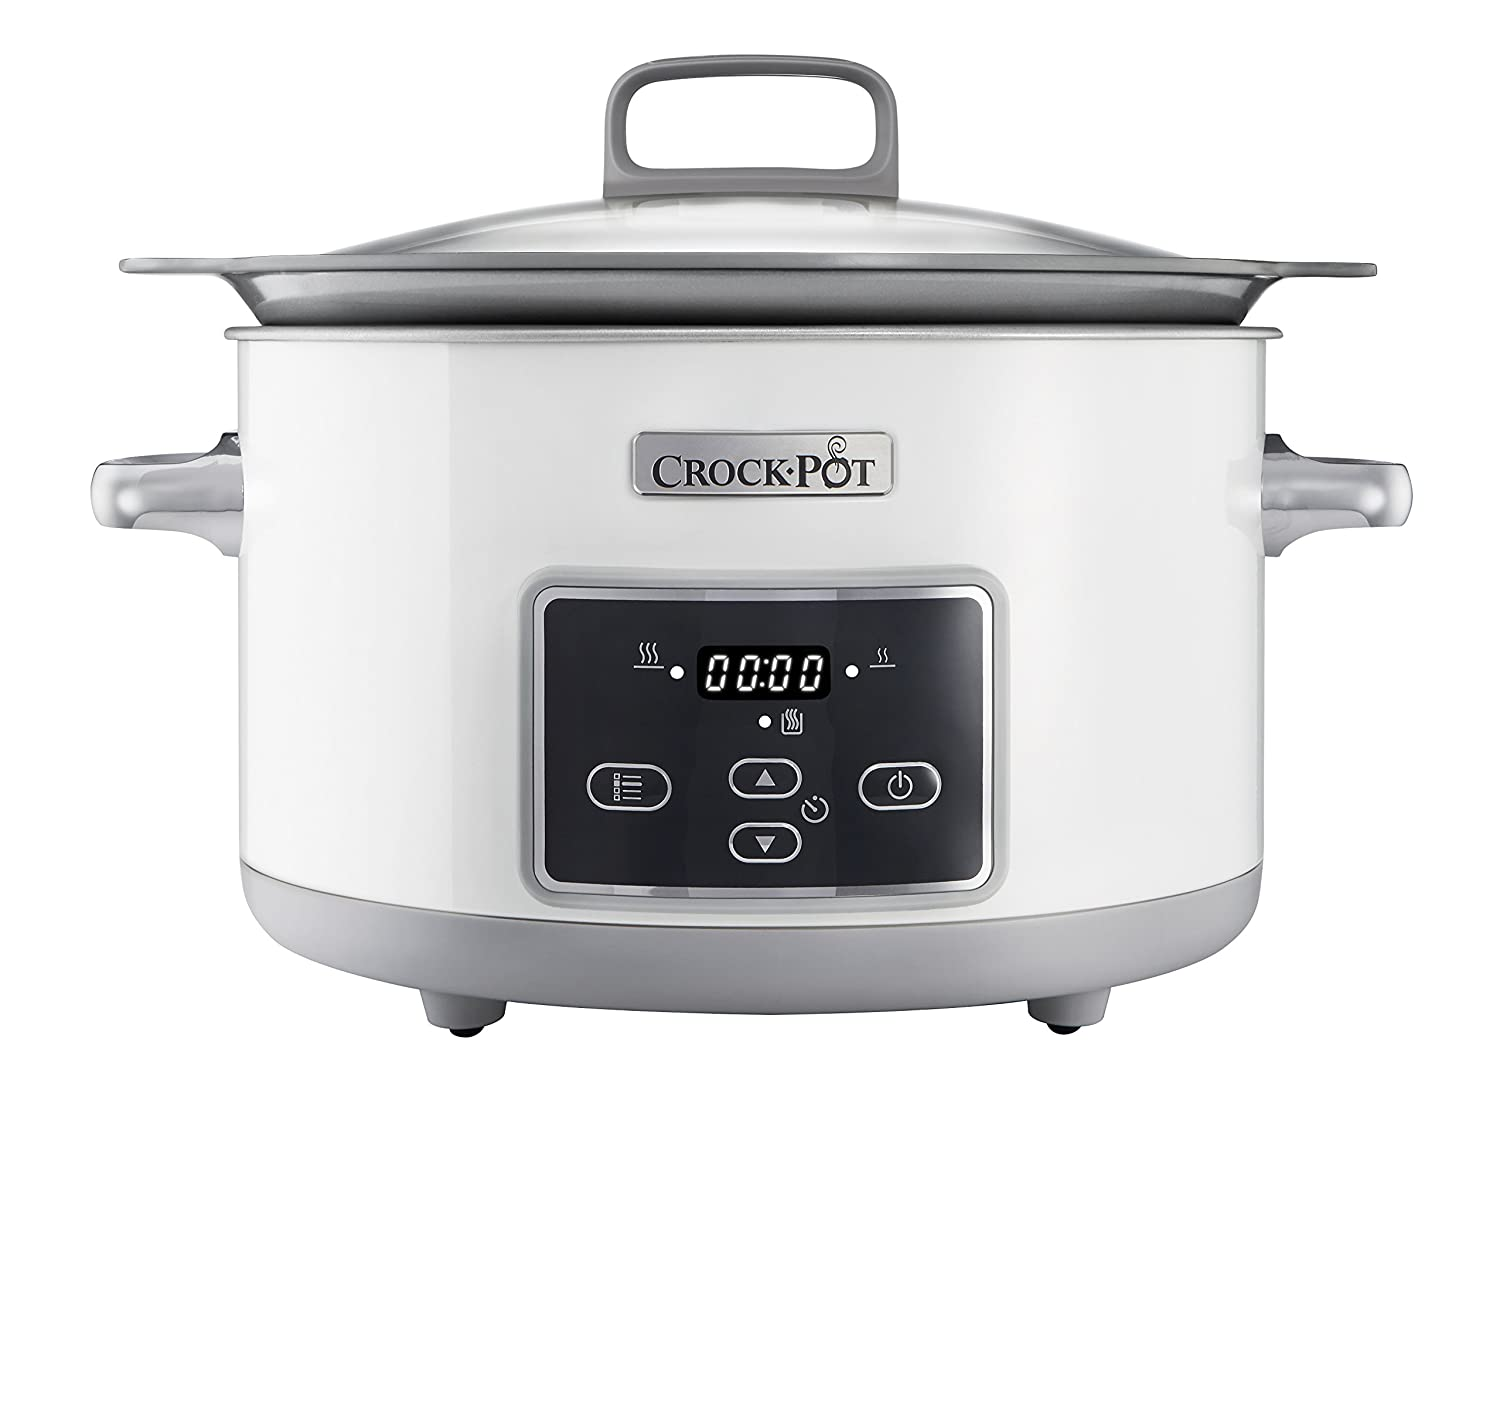 Crock Pot Duraceramic CscX Olla de cocción lenta L color blanco